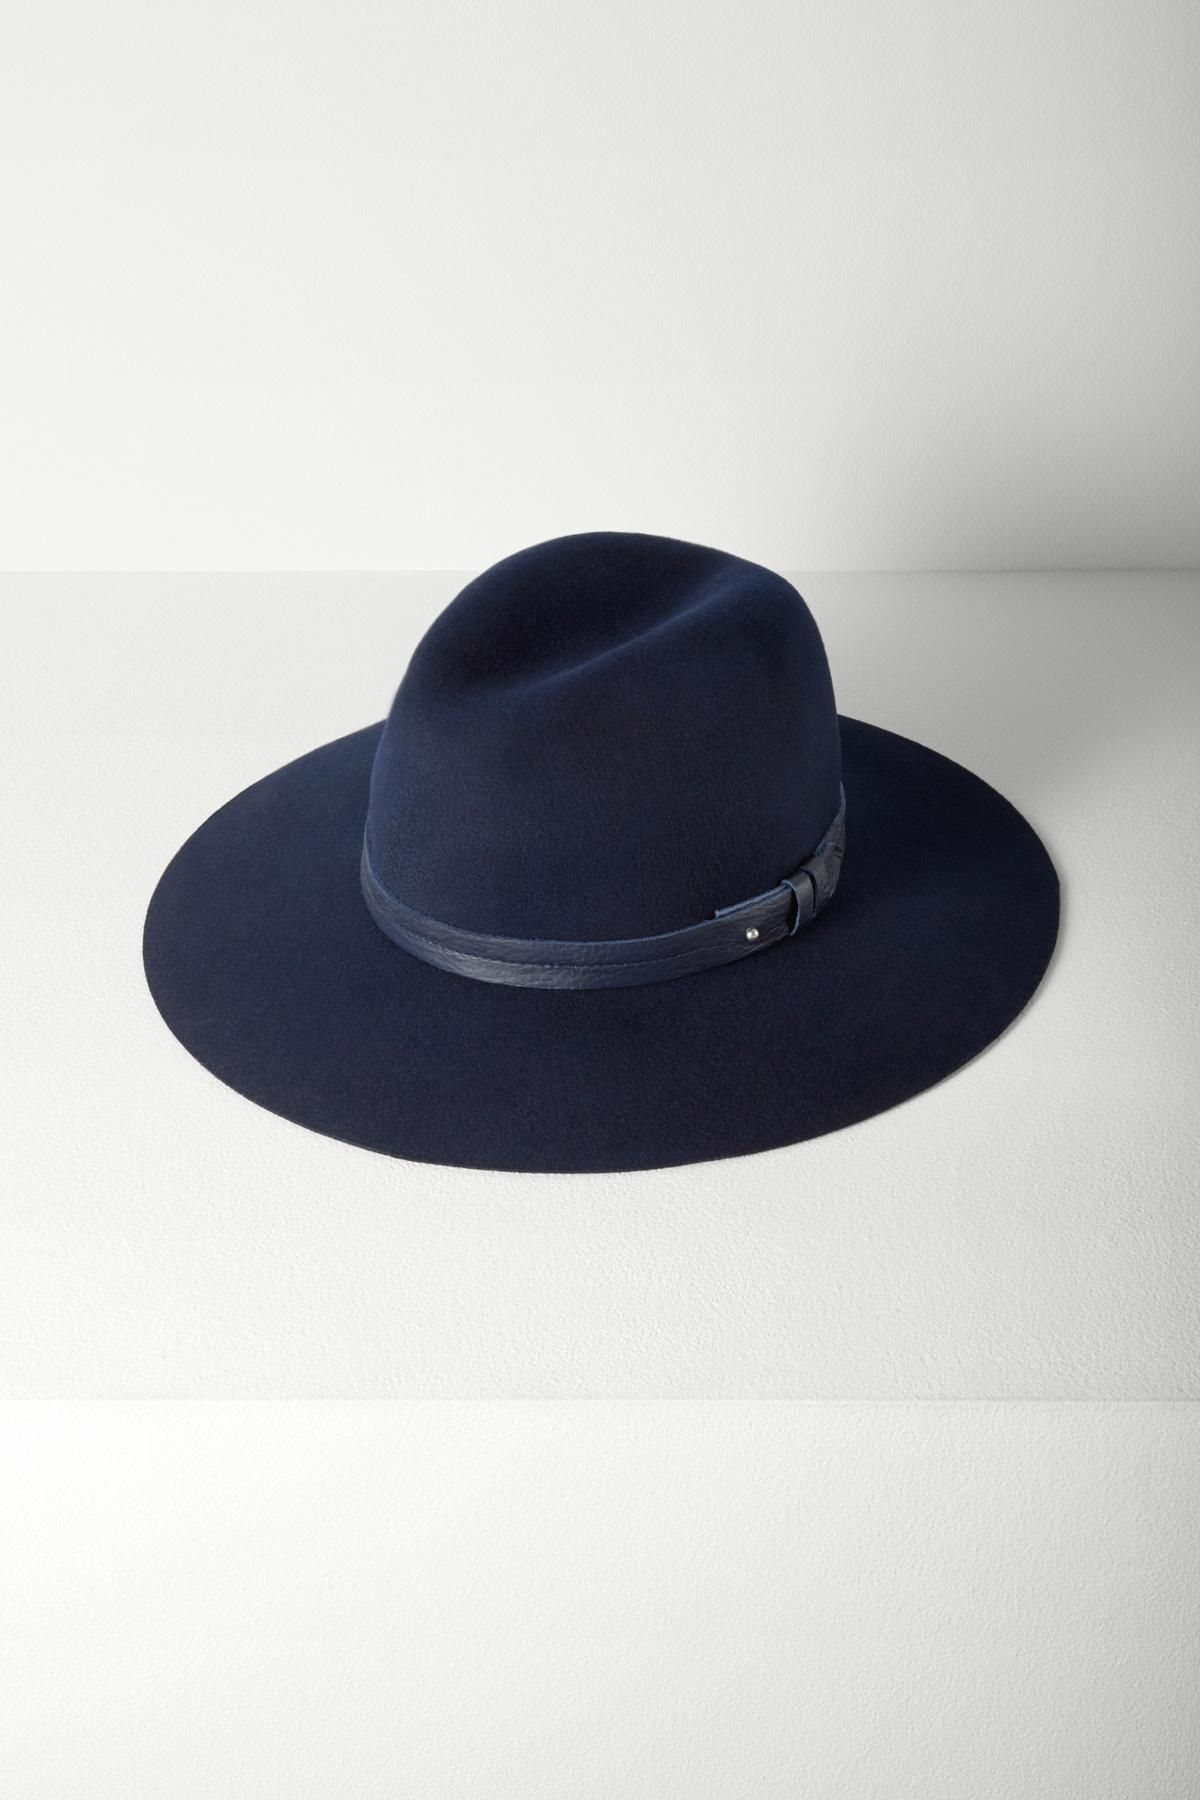 RAG u BONE WIDE BRIM FEDORA  HATS  Pinterest  Wide brim fedora